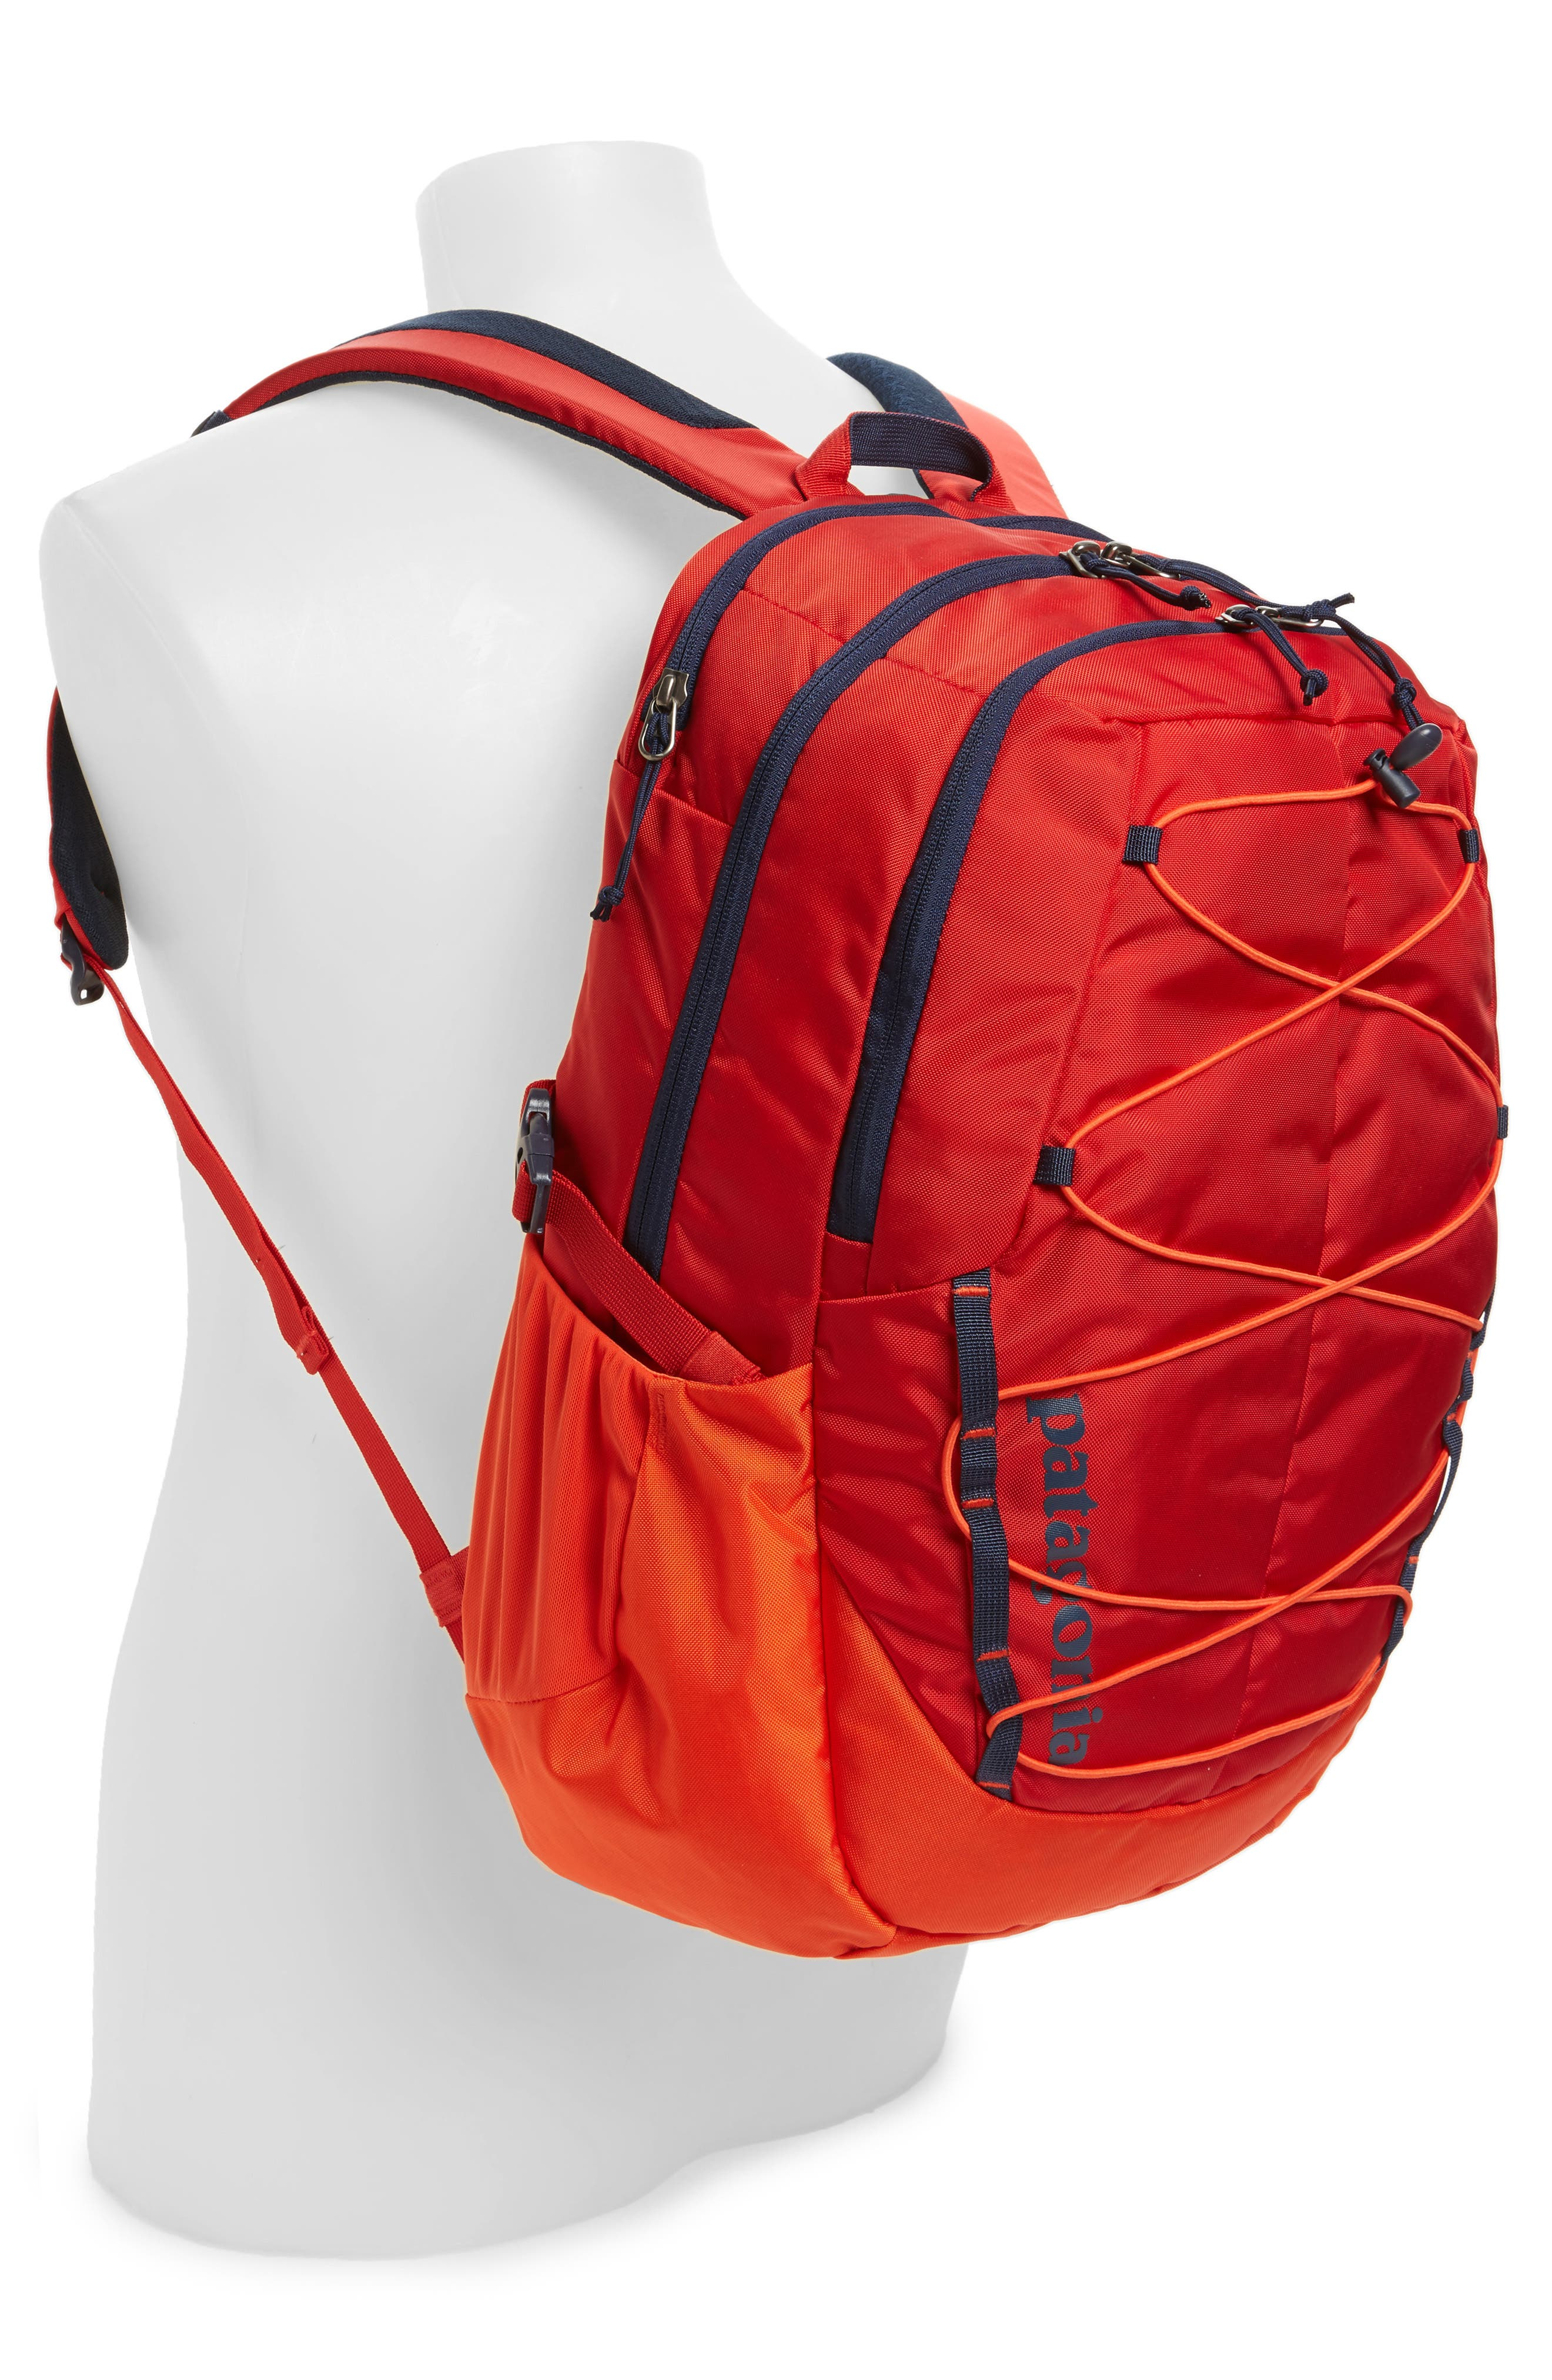 30L Chacabuco Backpack,                             Alternate thumbnail 2, color,                             Paintbrush Red